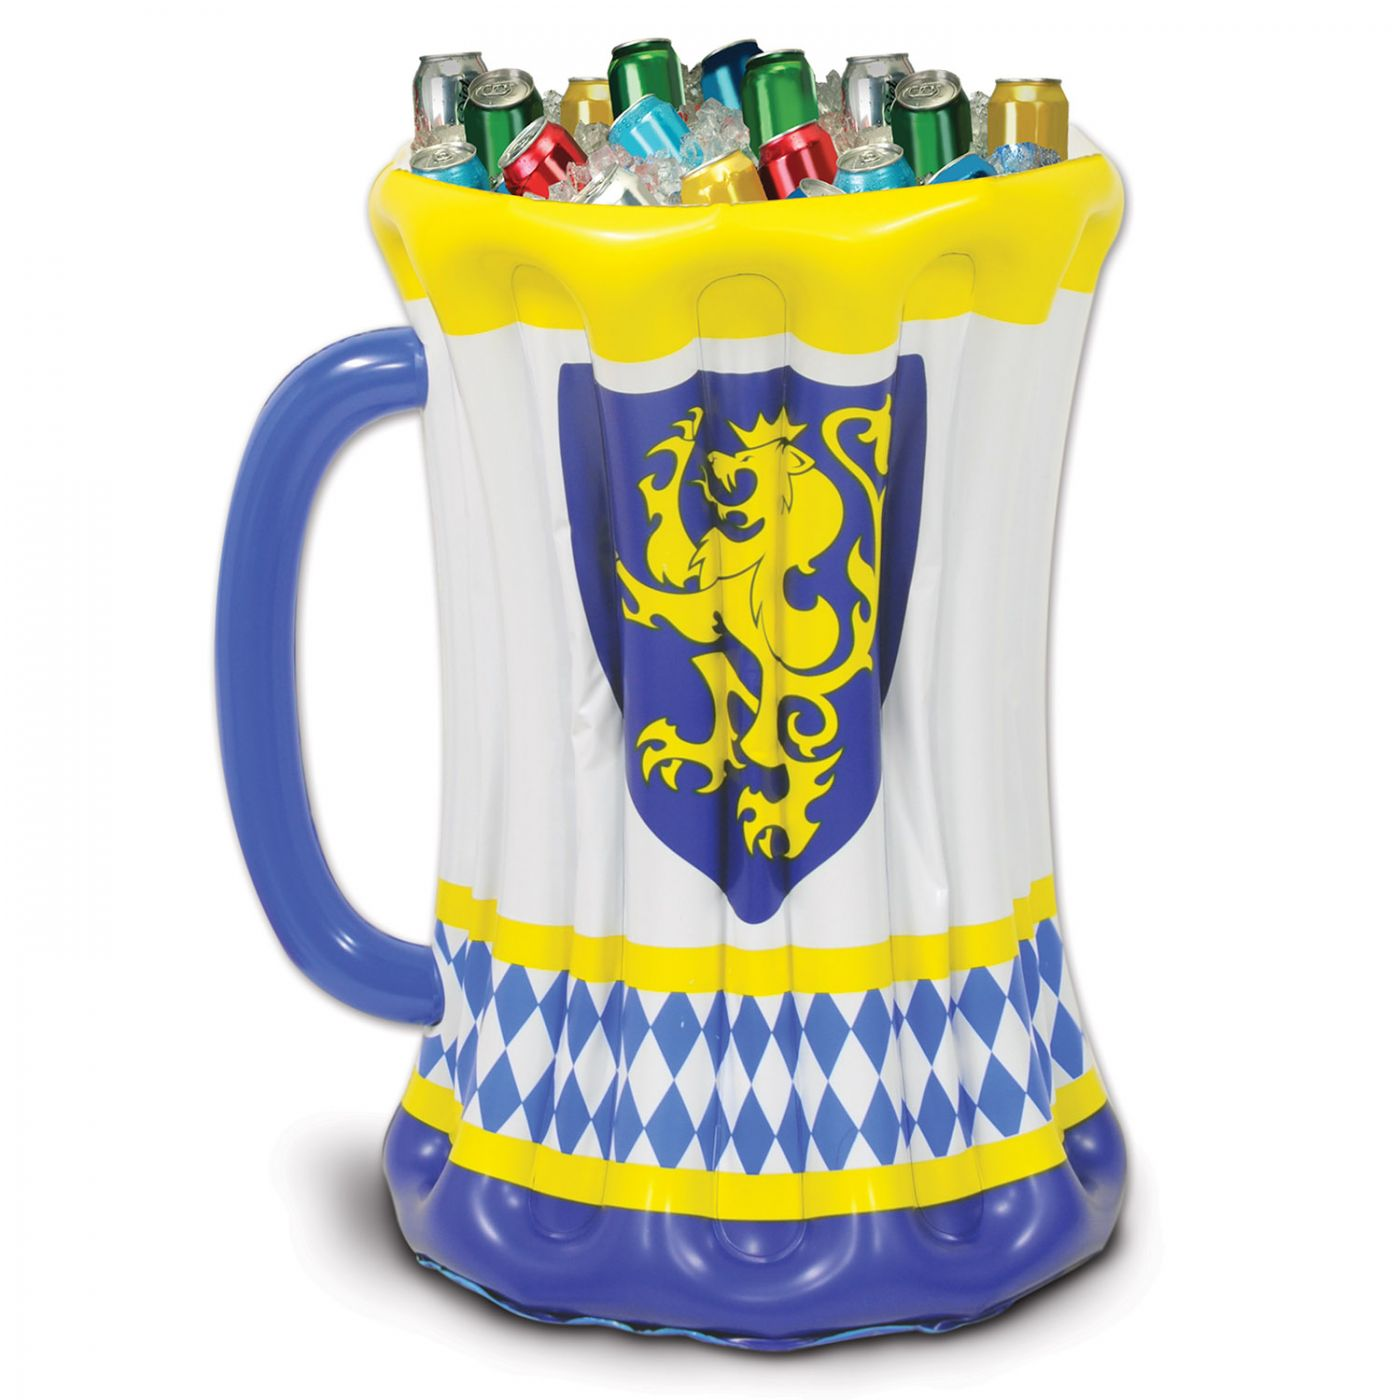 Inflatable Beer Stein Cooler (6) image